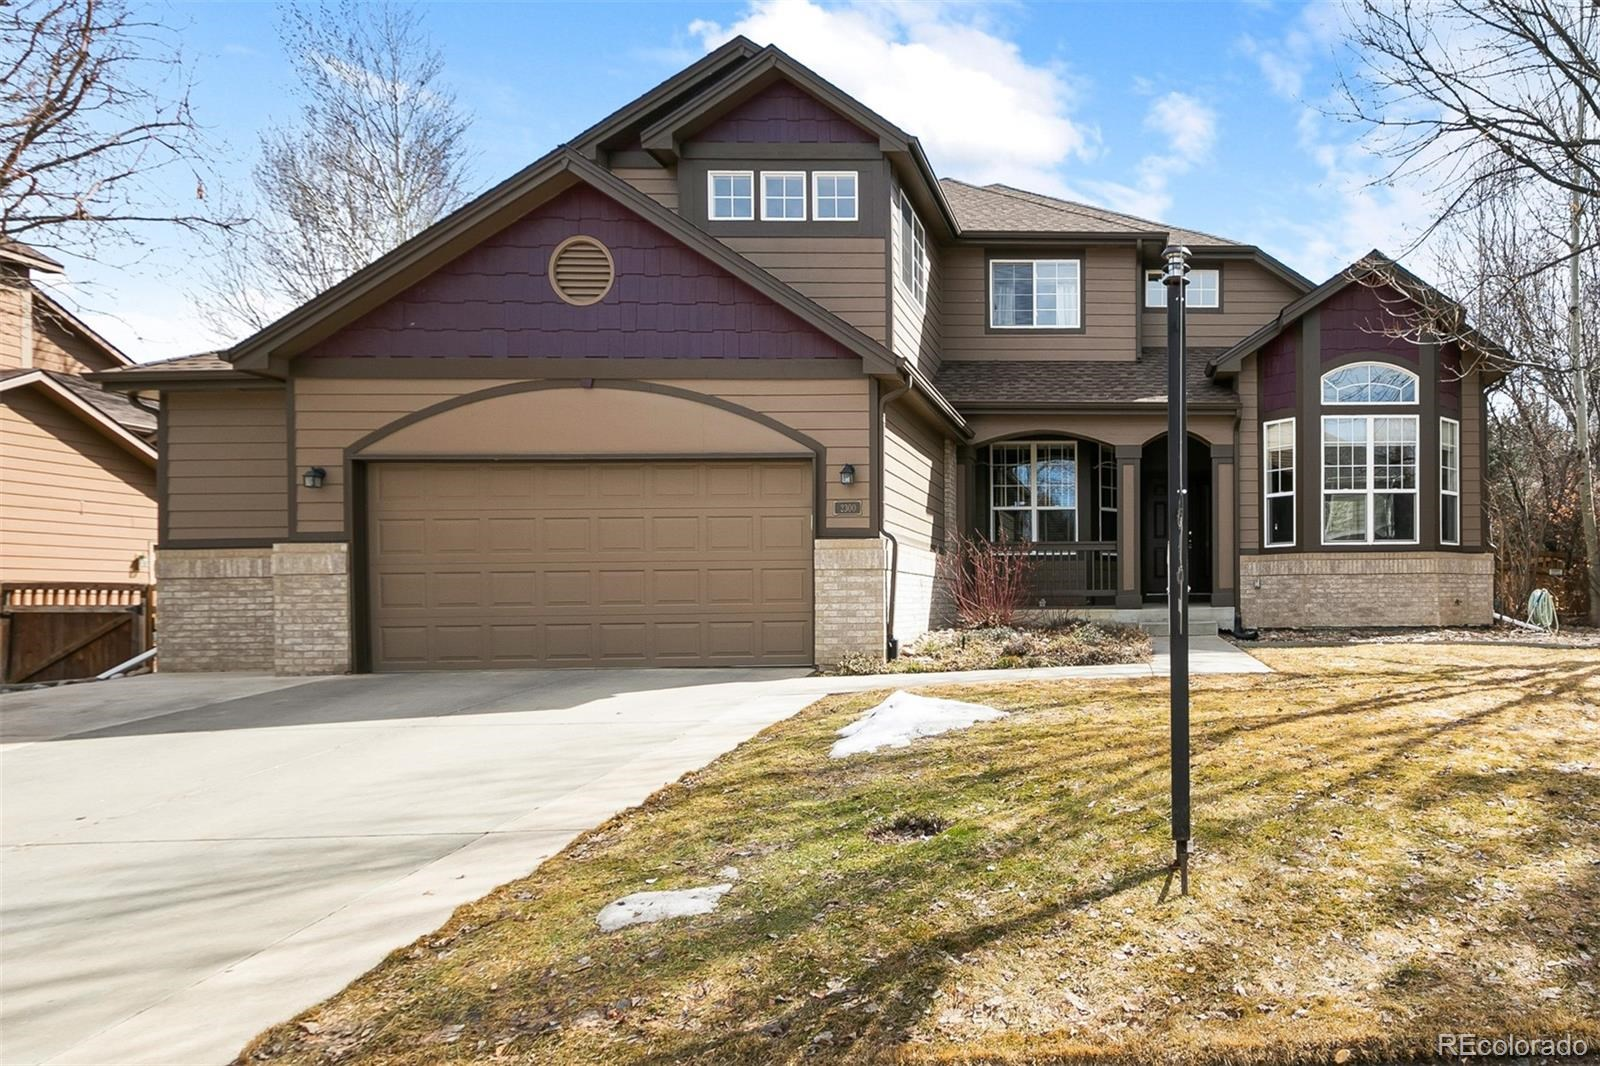 MLS# 3491087 - 3 - 2300 Creekside Drive, Longmont, CO 80504